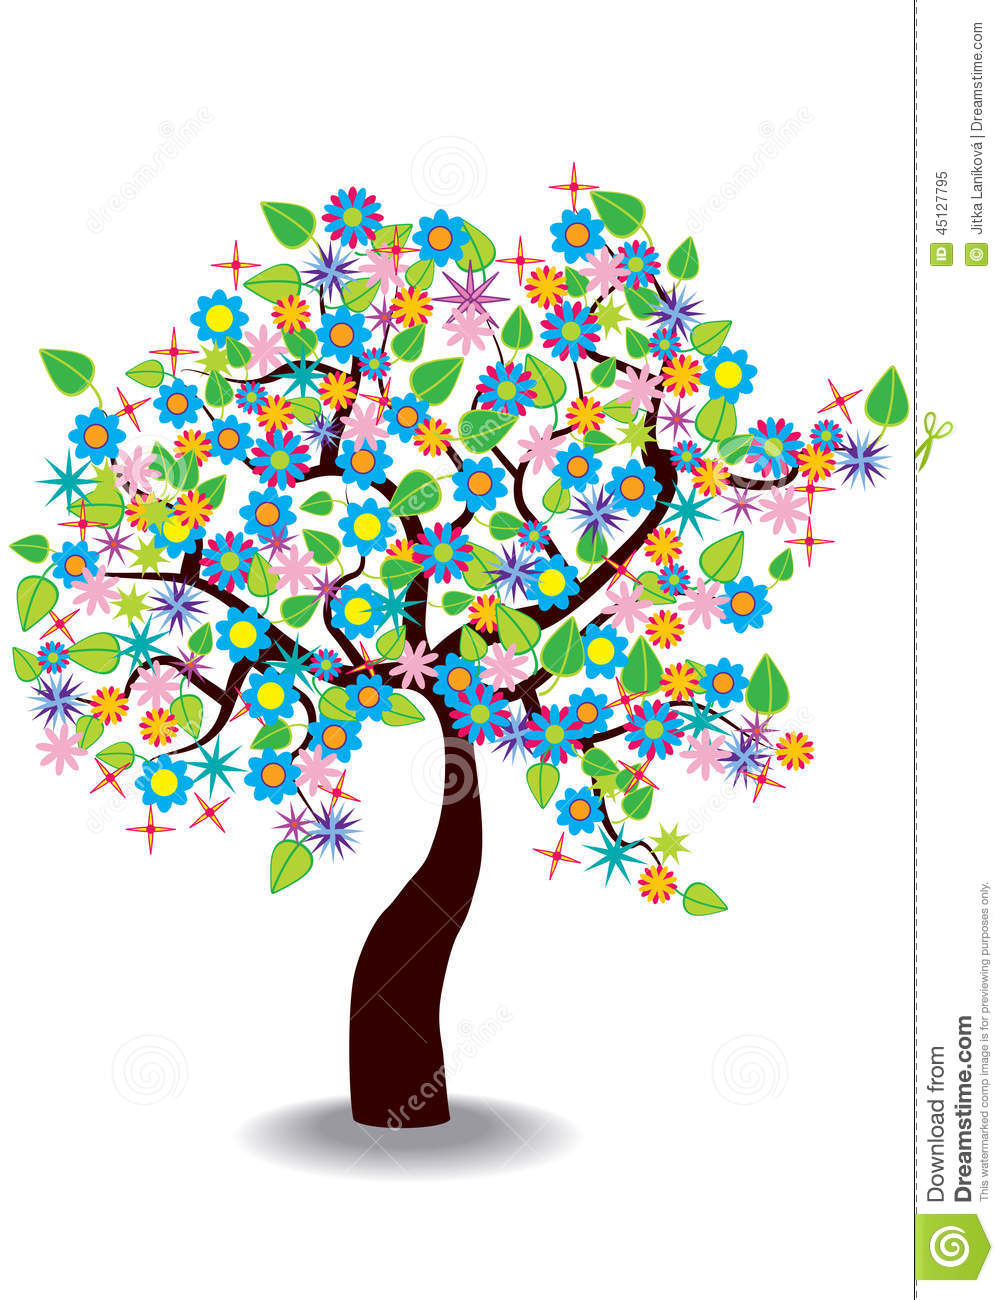 Stock Illustration Cartoon Illustration Spring Tree Colorful Blooming ...